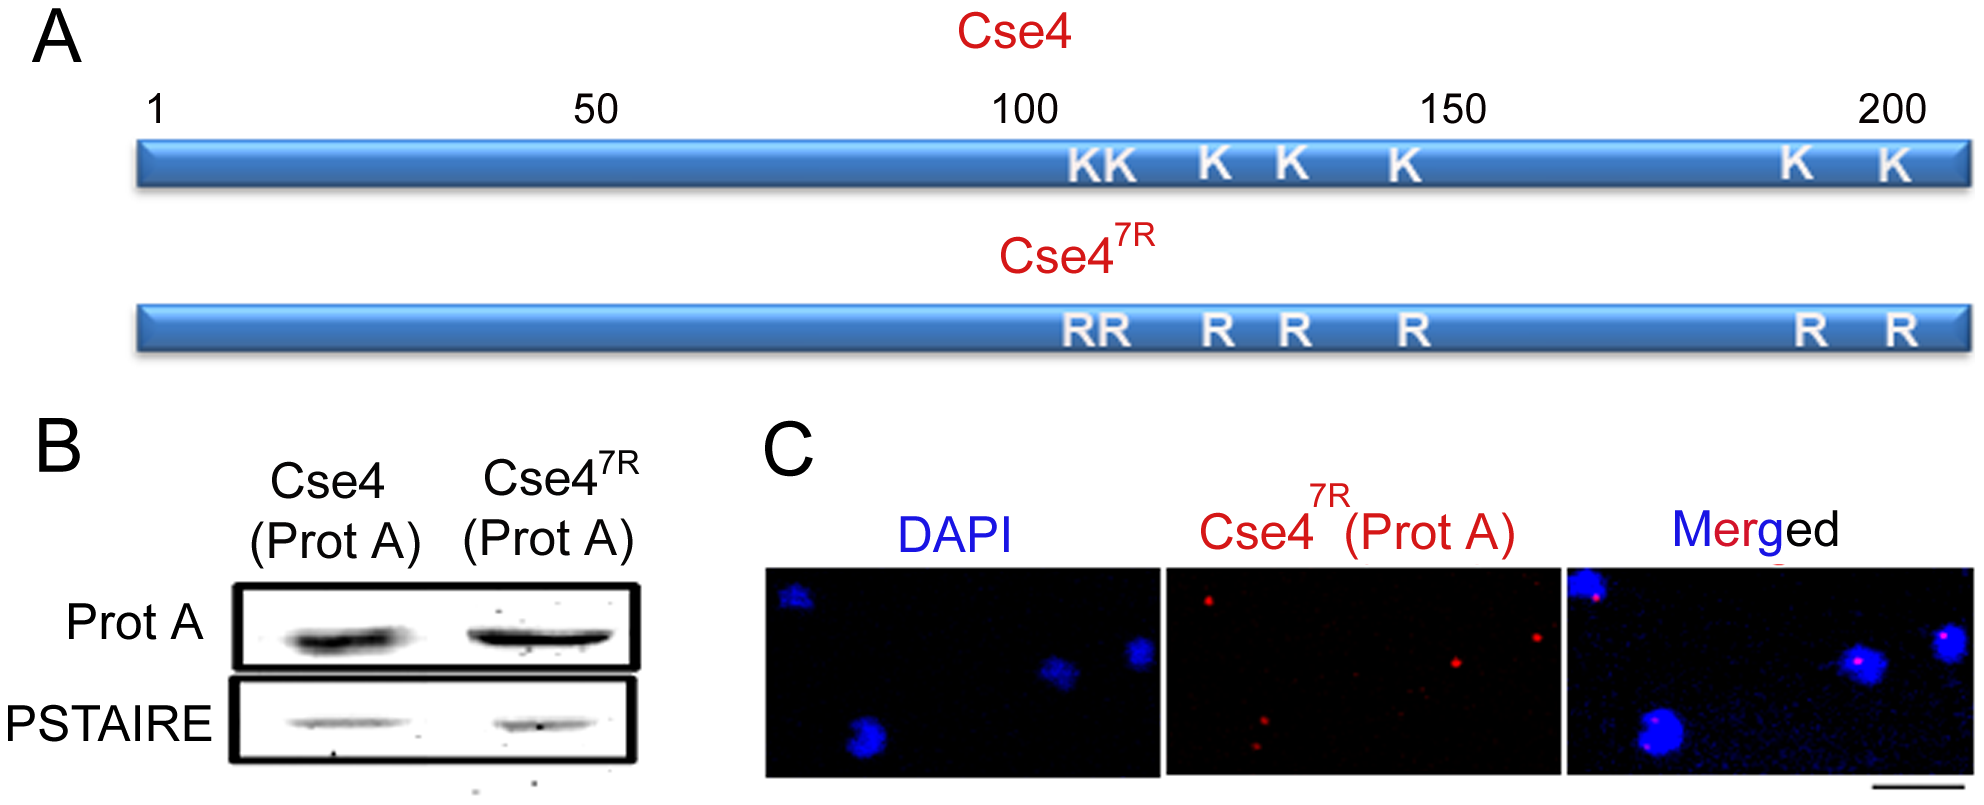 Cse4<sup>7R</sup> -Prot A is functional in <i>C. albicans</i>.